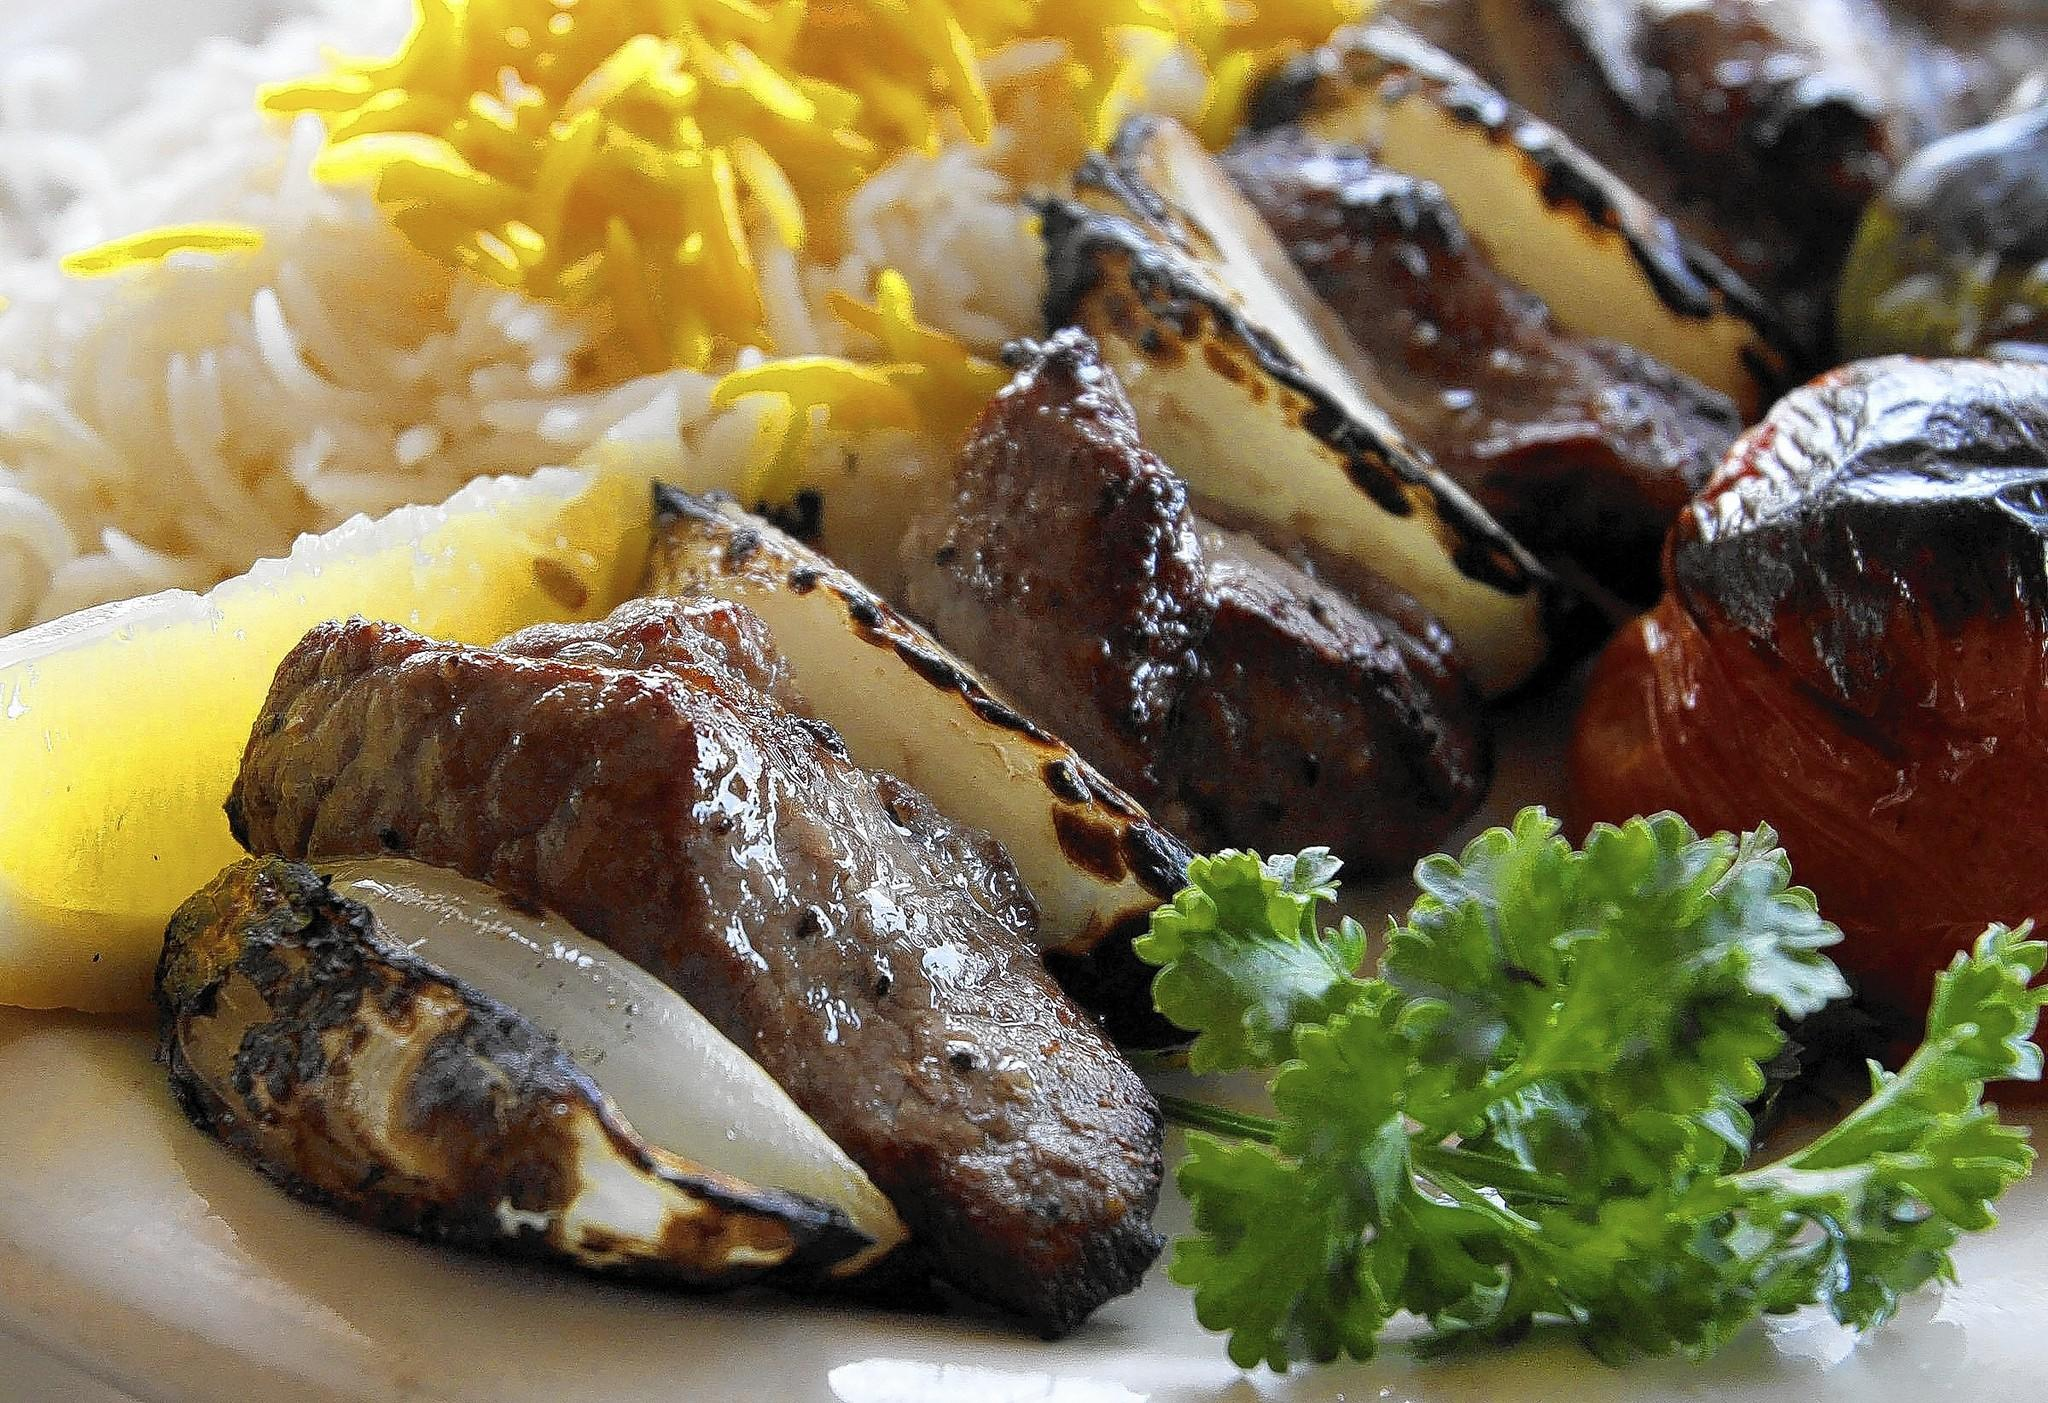 The lamb kabob comes with rice and grilled onions, tomato and pepper at The Olive Branch in the 3600 block of Foothill Boulevard in La Crescenta, on Thursday, Feb. 27, 2014.